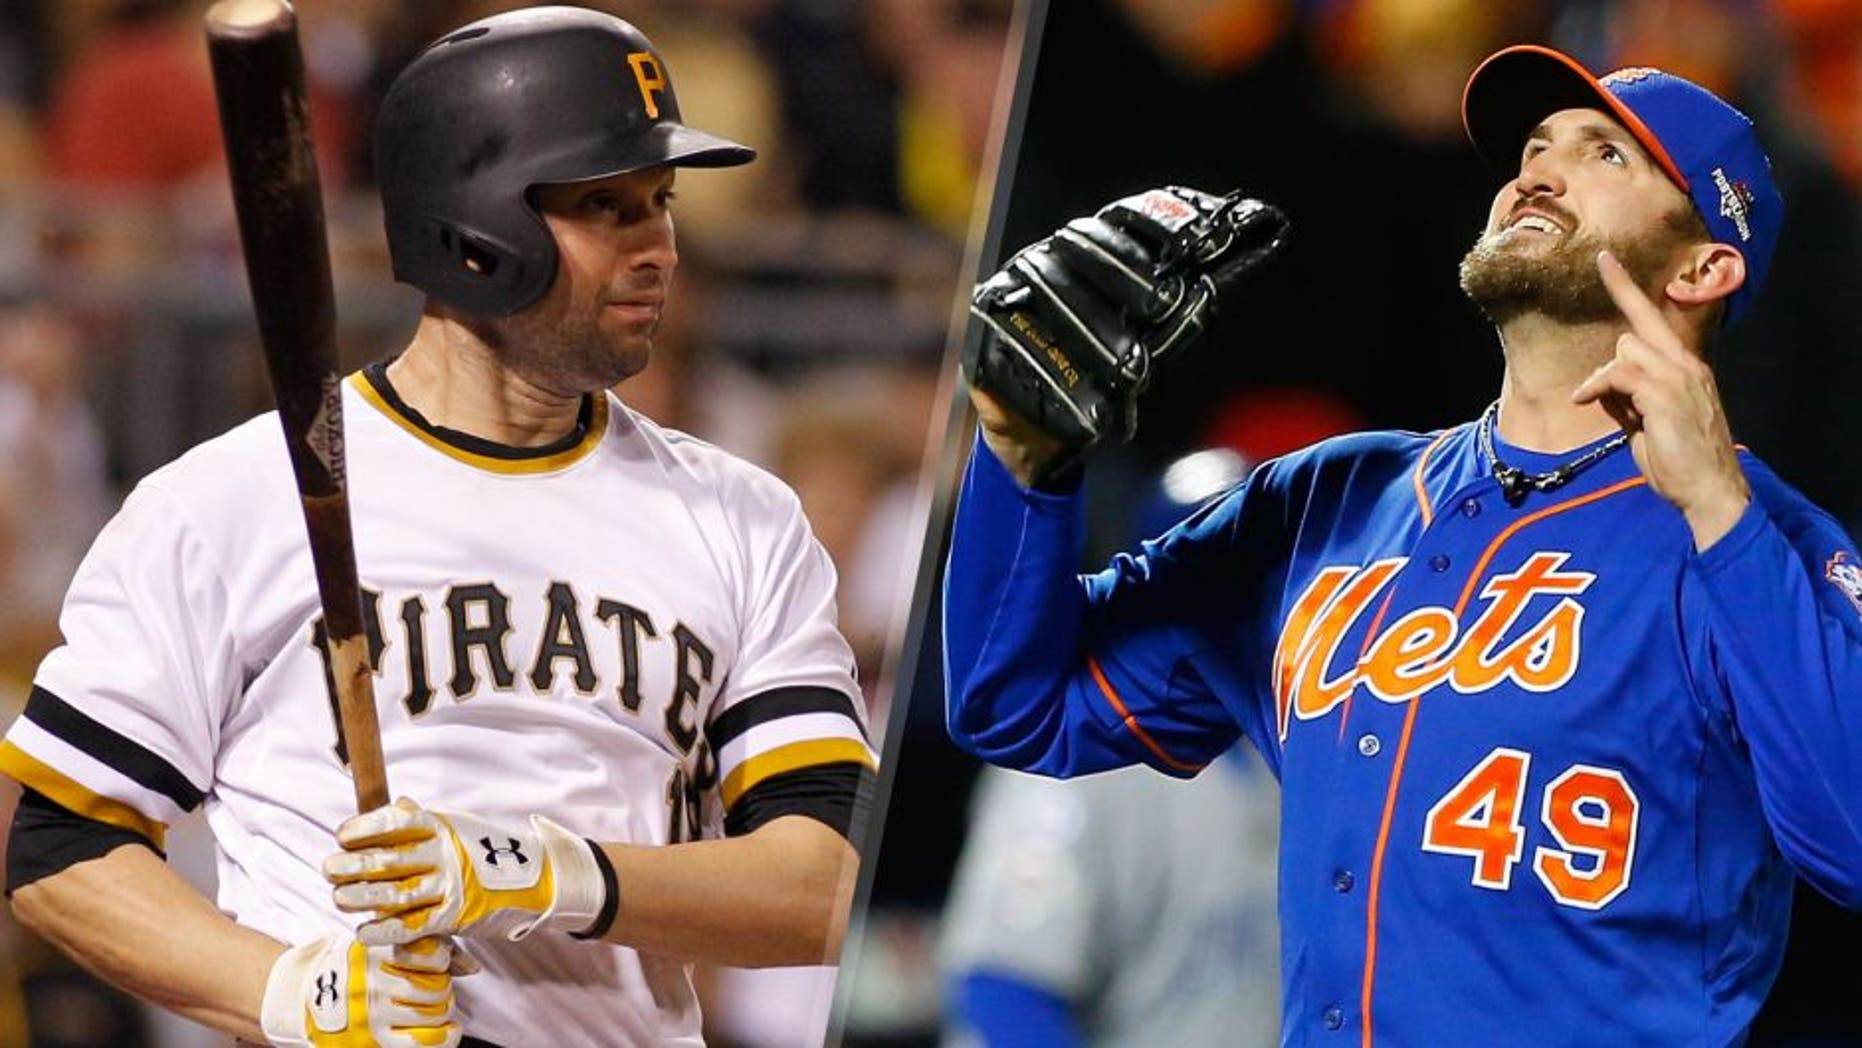 Neil Walker #18 of the Pittsburgh Pirates in action during the game against the Chicago Cubs at PNC Park on September 16, 2015 in Pittsburgh, Pennsylvania. (Photo by Justin K. Aller/Getty Images) Jonathon Niese #49 of the New York Mets reacts after getting the final out of the sixth inning against the Chicago Cubs during game two of the 2015 MLB National League Championship Series at Citi Field on October 18, 2015 in the Flushing neighborhood of the Queens borough of New York City. The Mets defeated the Cubs 4-1. (Photo by Jim McIsaac/Getty Images)